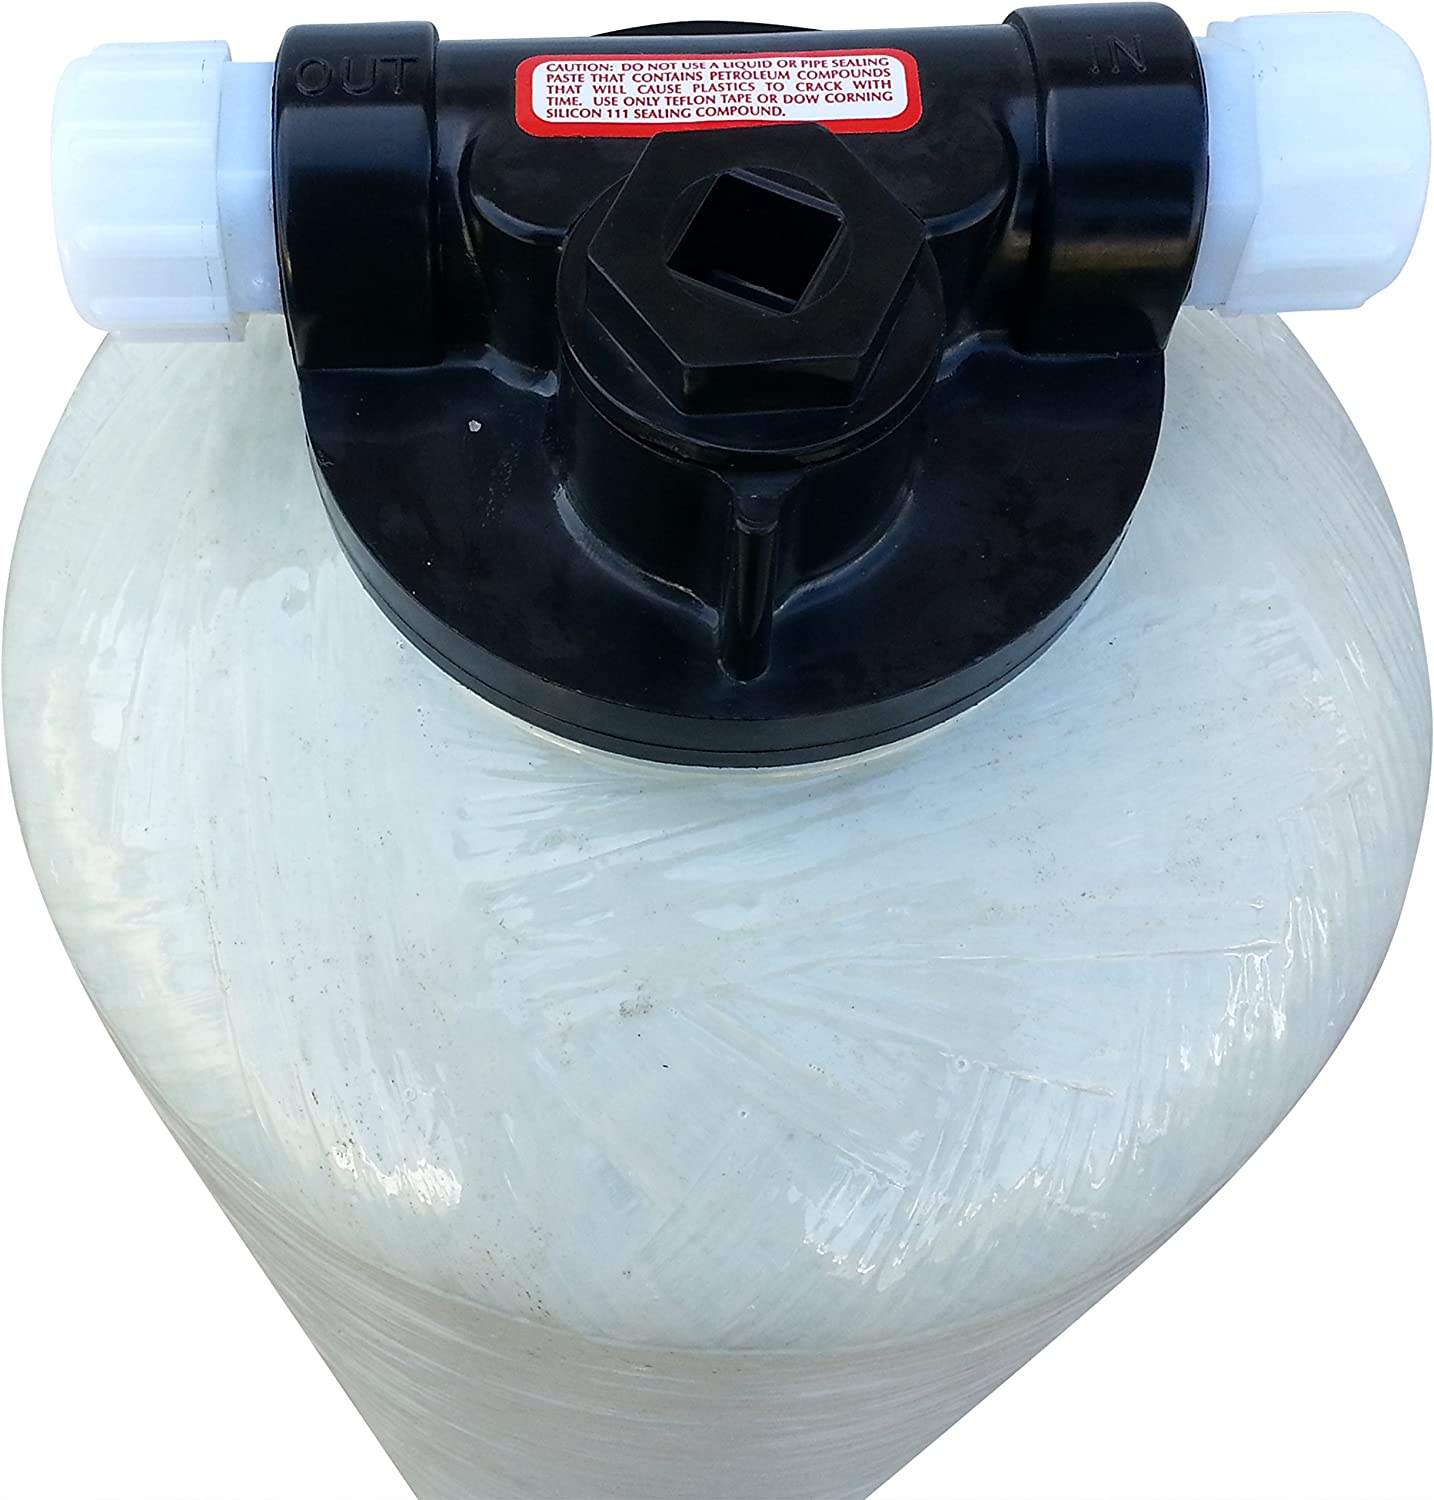 8 Inch Diameter By 44 Inch Activated Carbon//Charcoal Filter tm Whole House Activated Carbon Mobile Sweet Water